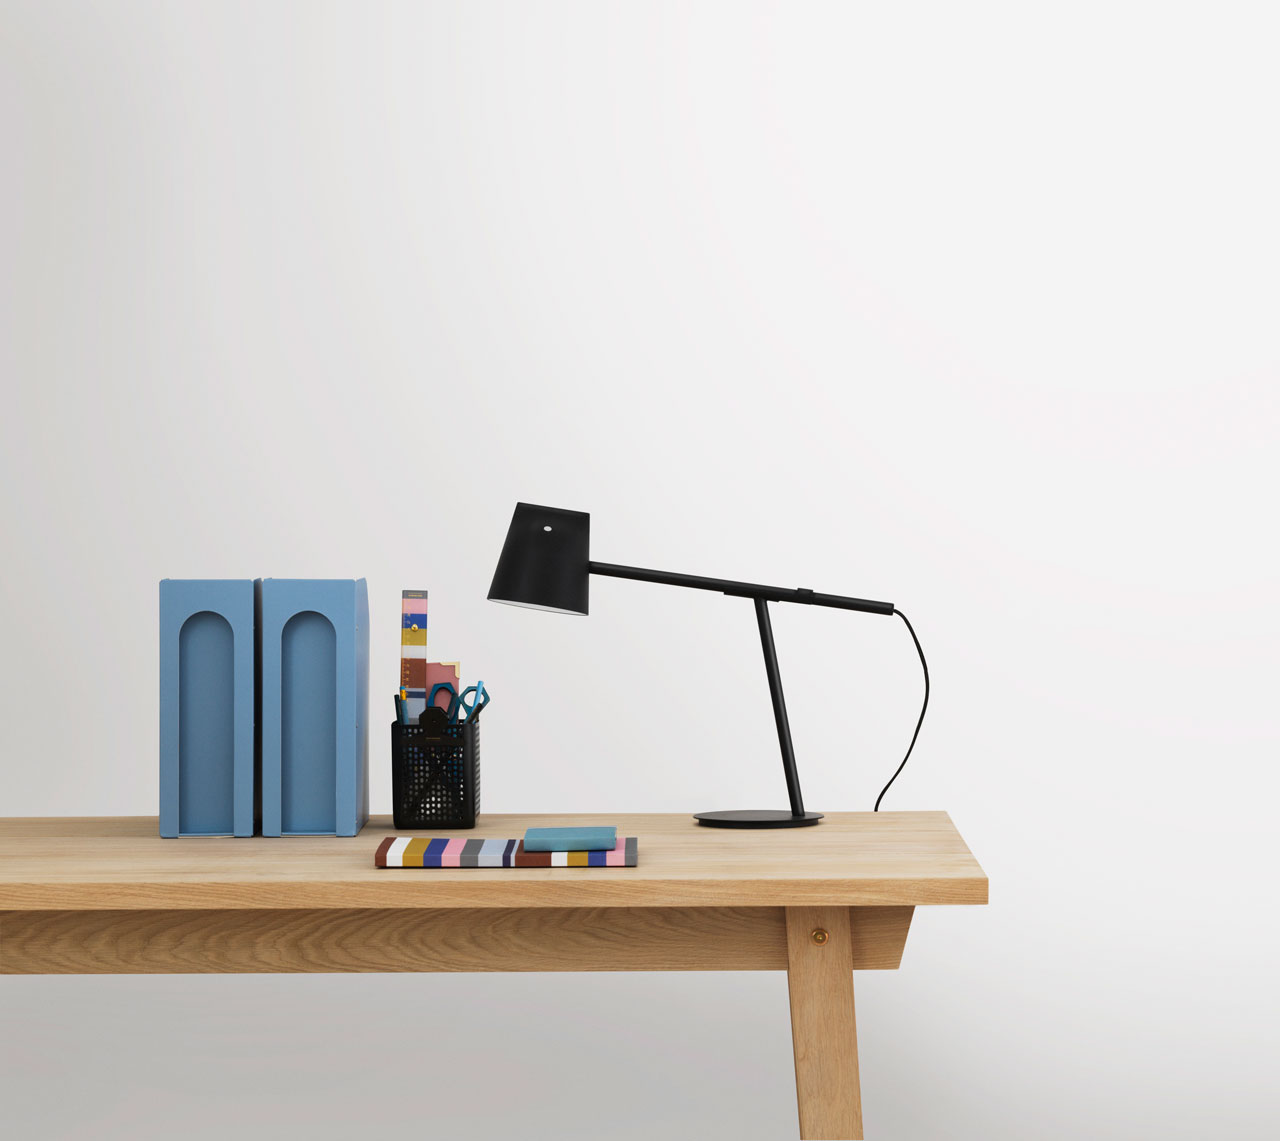 Momento desk lamp by Daniel Debiasi and Federico Sandri (Something design studio) for Normann Copenhagen.